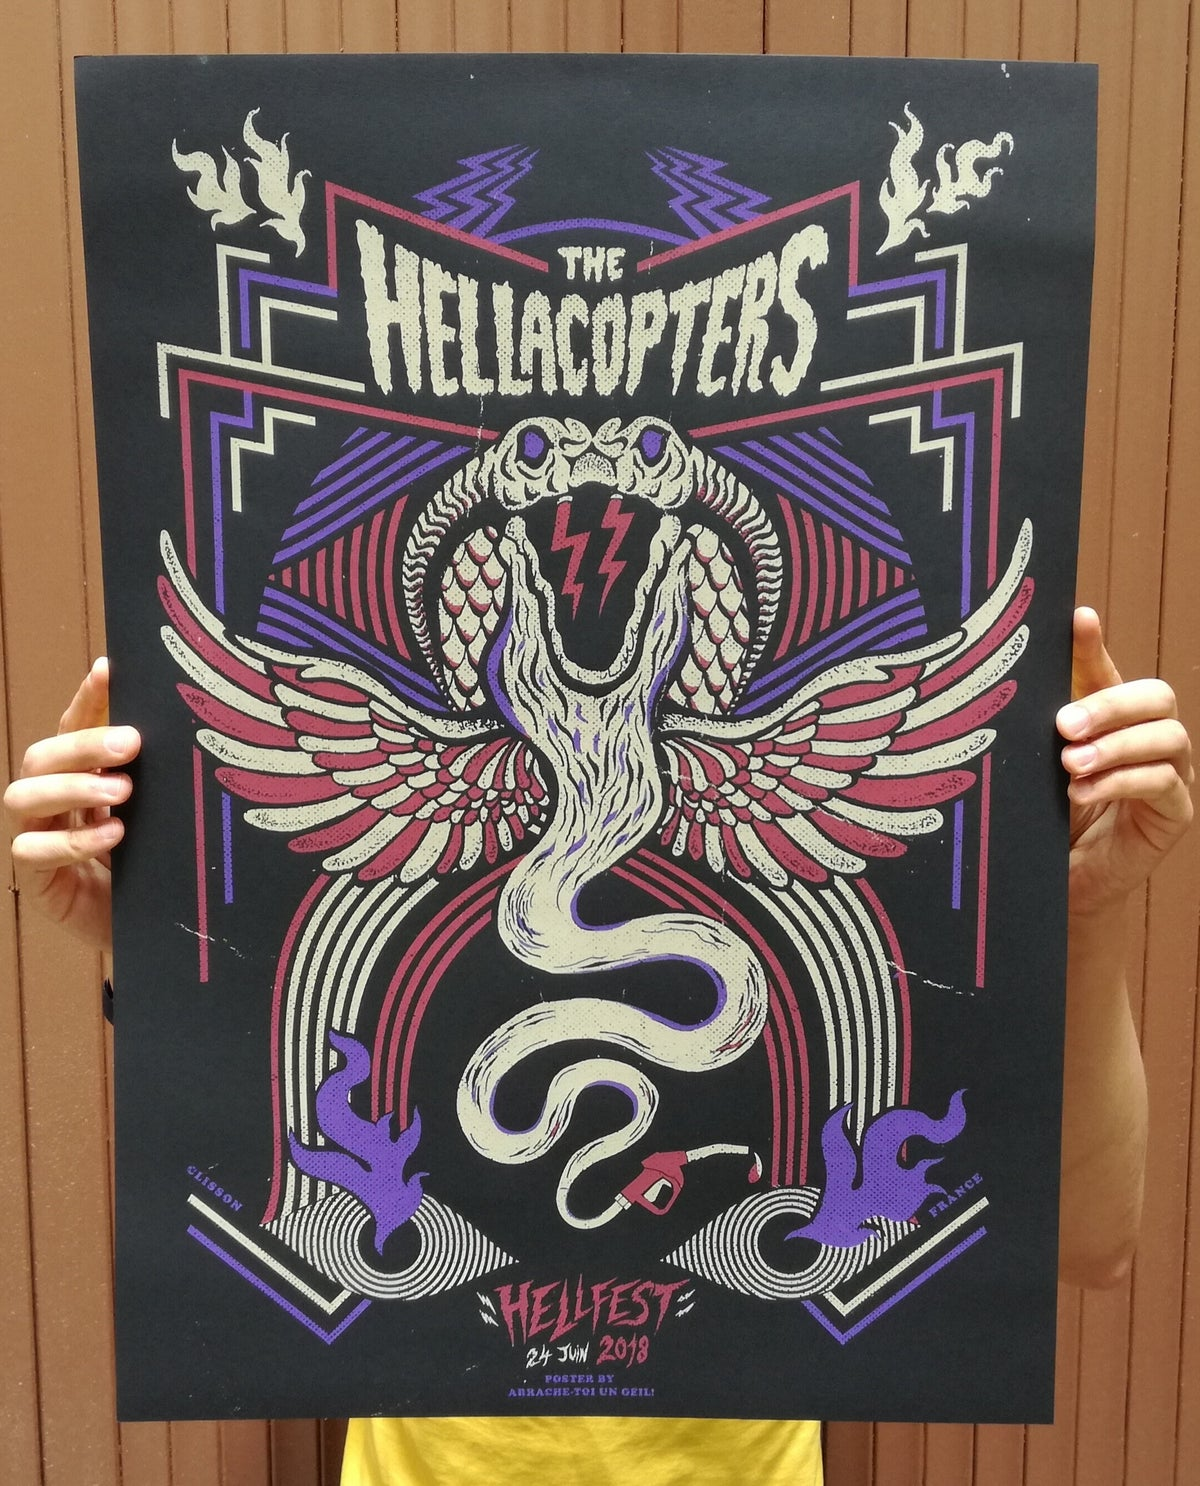 THE HELLACOPTERS (Hellfest 2018) screenprinted poster